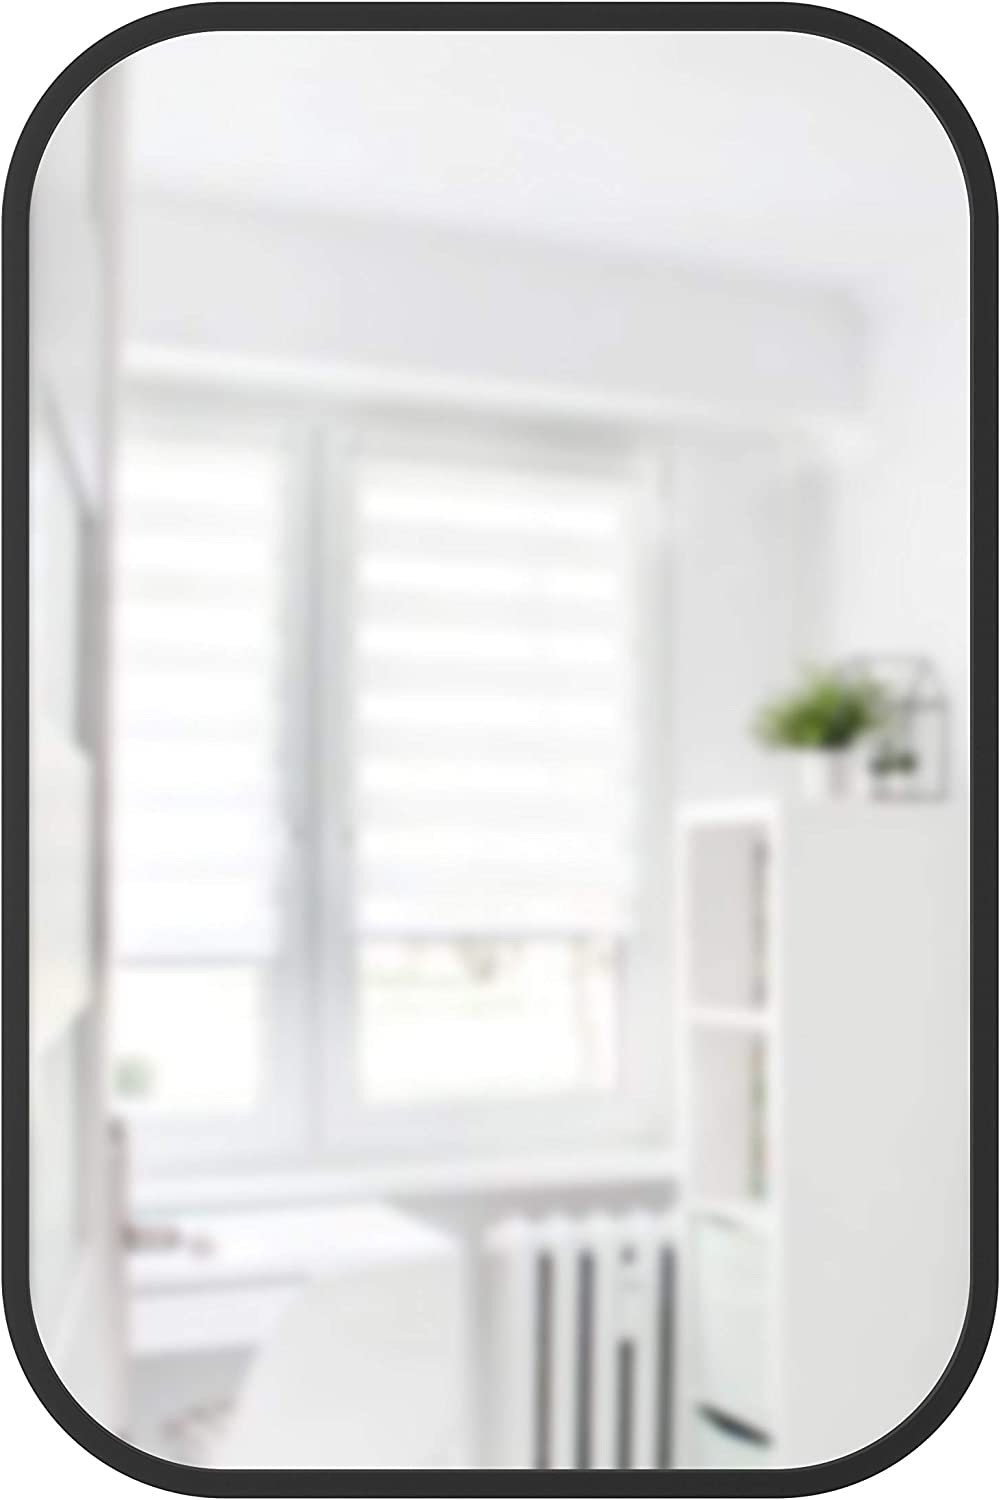 Umbra Hub Rectangular Wall Mirror with Rubber Frame, Modern Decor for Entryways, Washrooms, Living Rooms, 24 x 36, Black